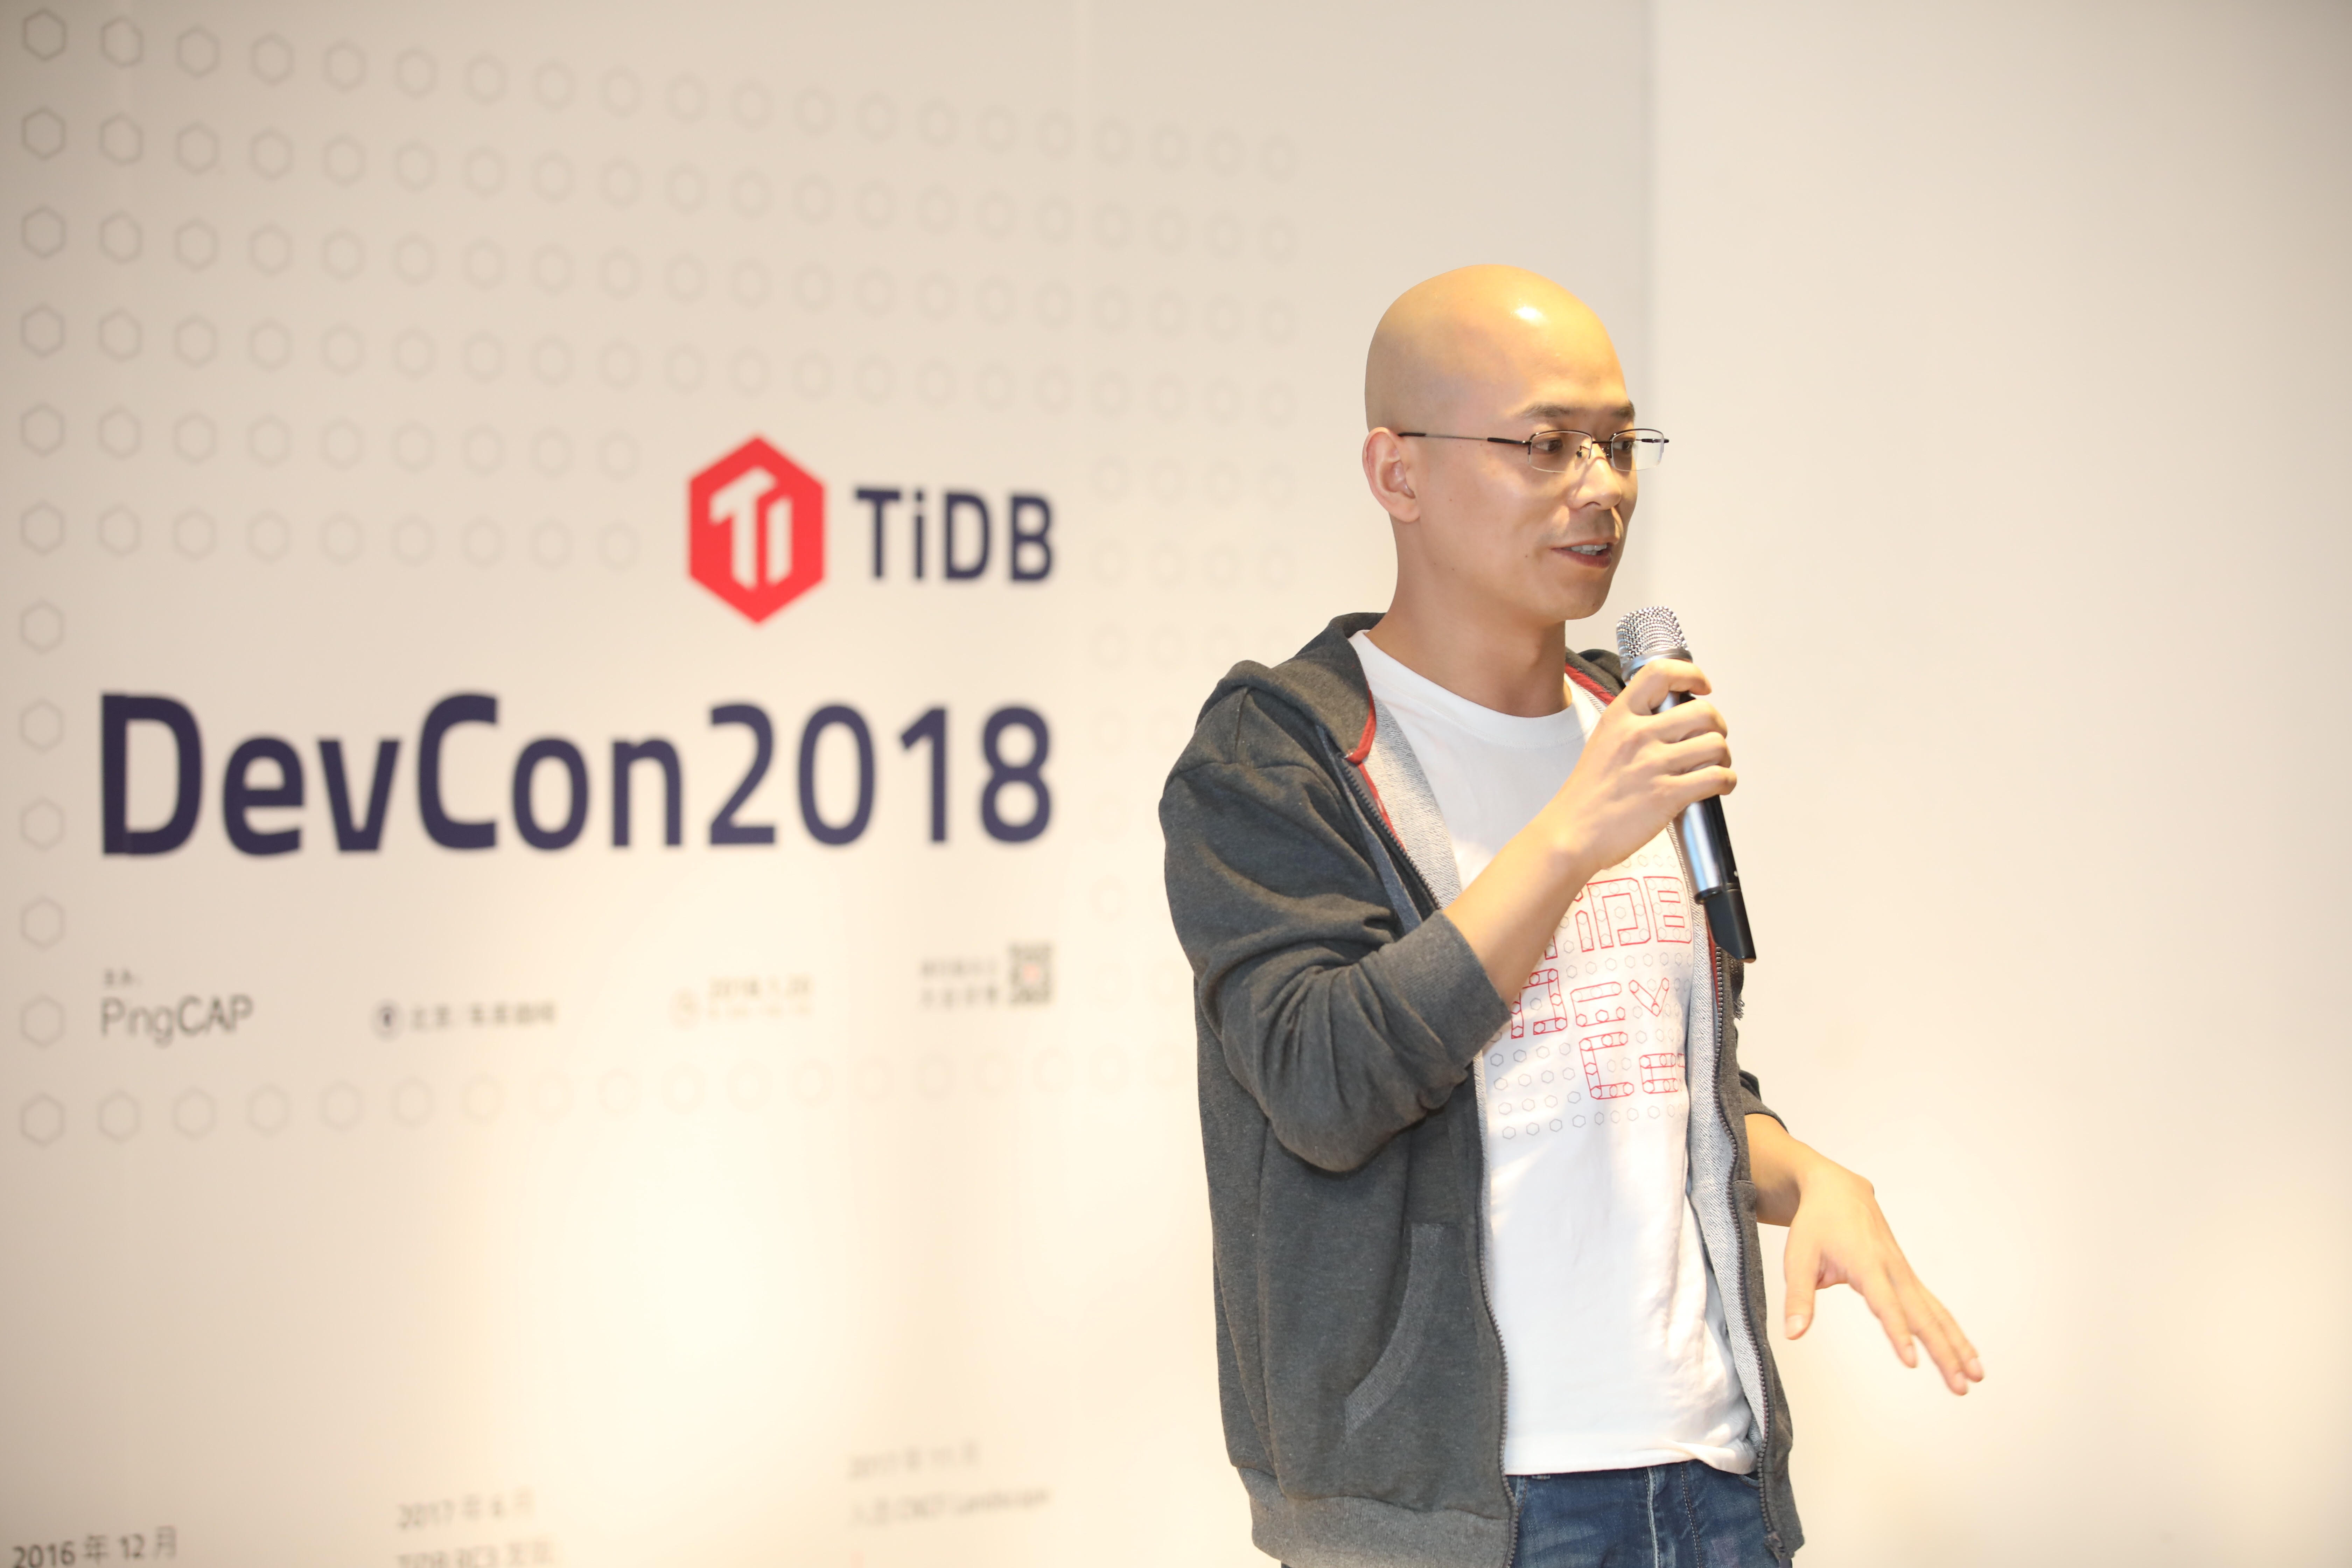 TiDB developer PingCAP wants to expand in North America after raising $50M Series C